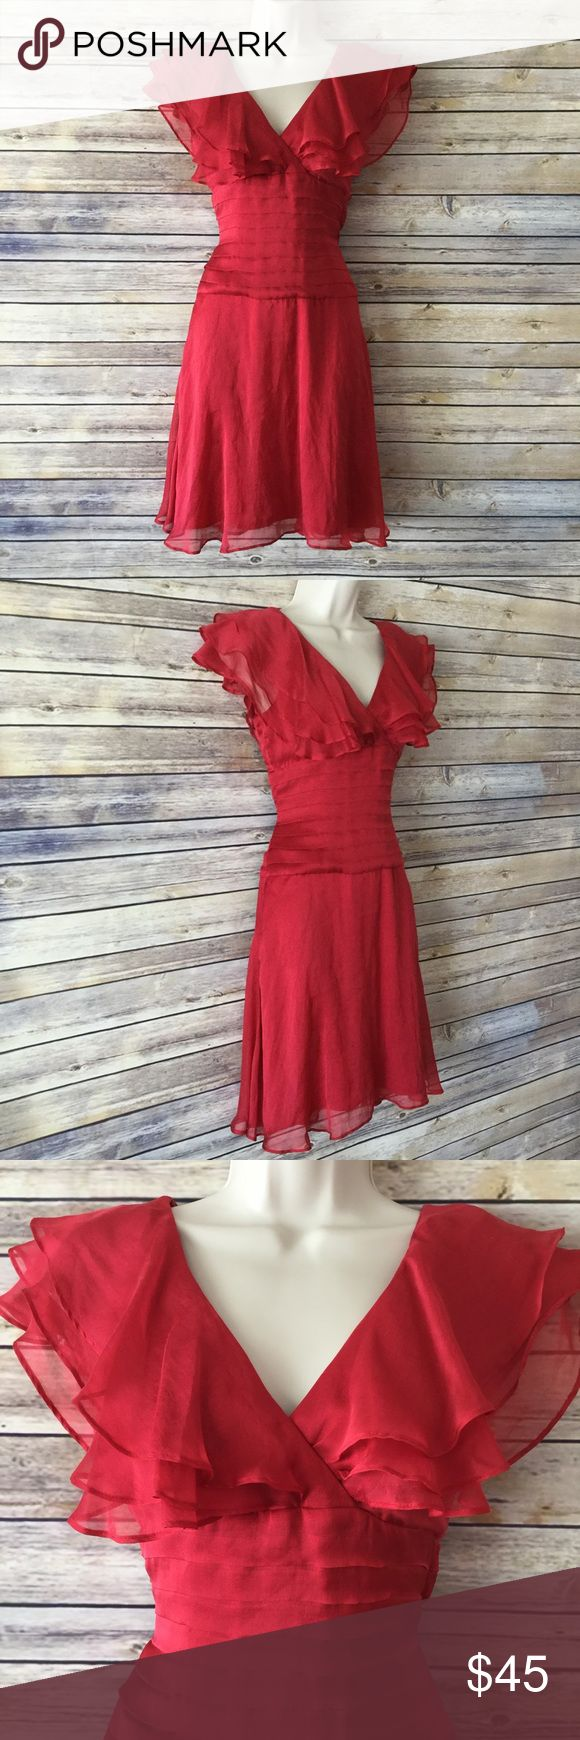 BEBE NWT Red Chiffon Dress with Ruffled Sleeves Style description: BEBE NWT Red Chiffon Dress with Ruffled Sleeves, tapered waist  Size: 2  Condition: New with tags!  Measurements available upon request and all are taken while laying flat. Measurements are approximate. bebe Dresses